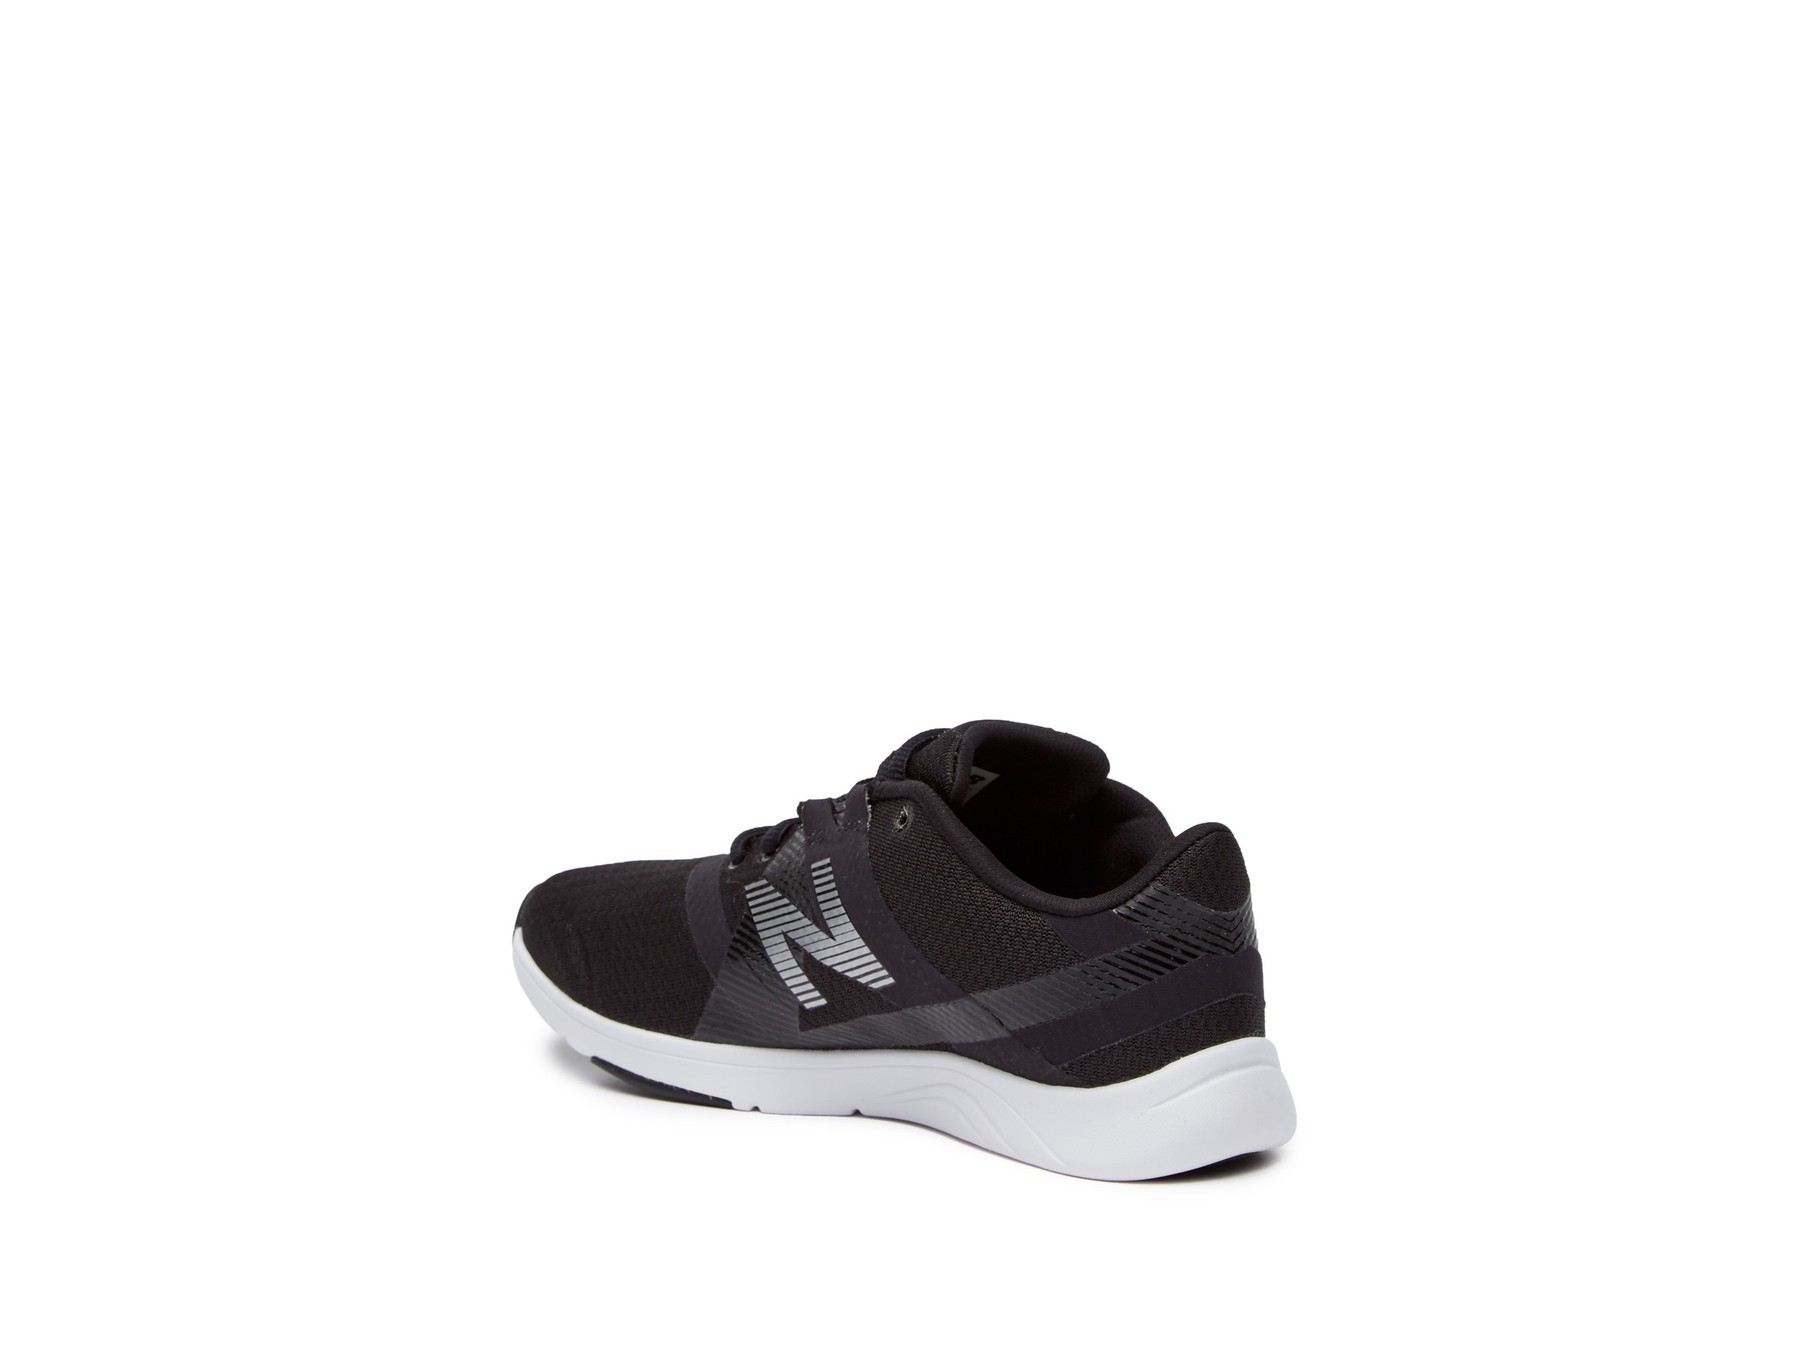 New Balance Womens WX611BW Low Top Lace Up Running Sneaker